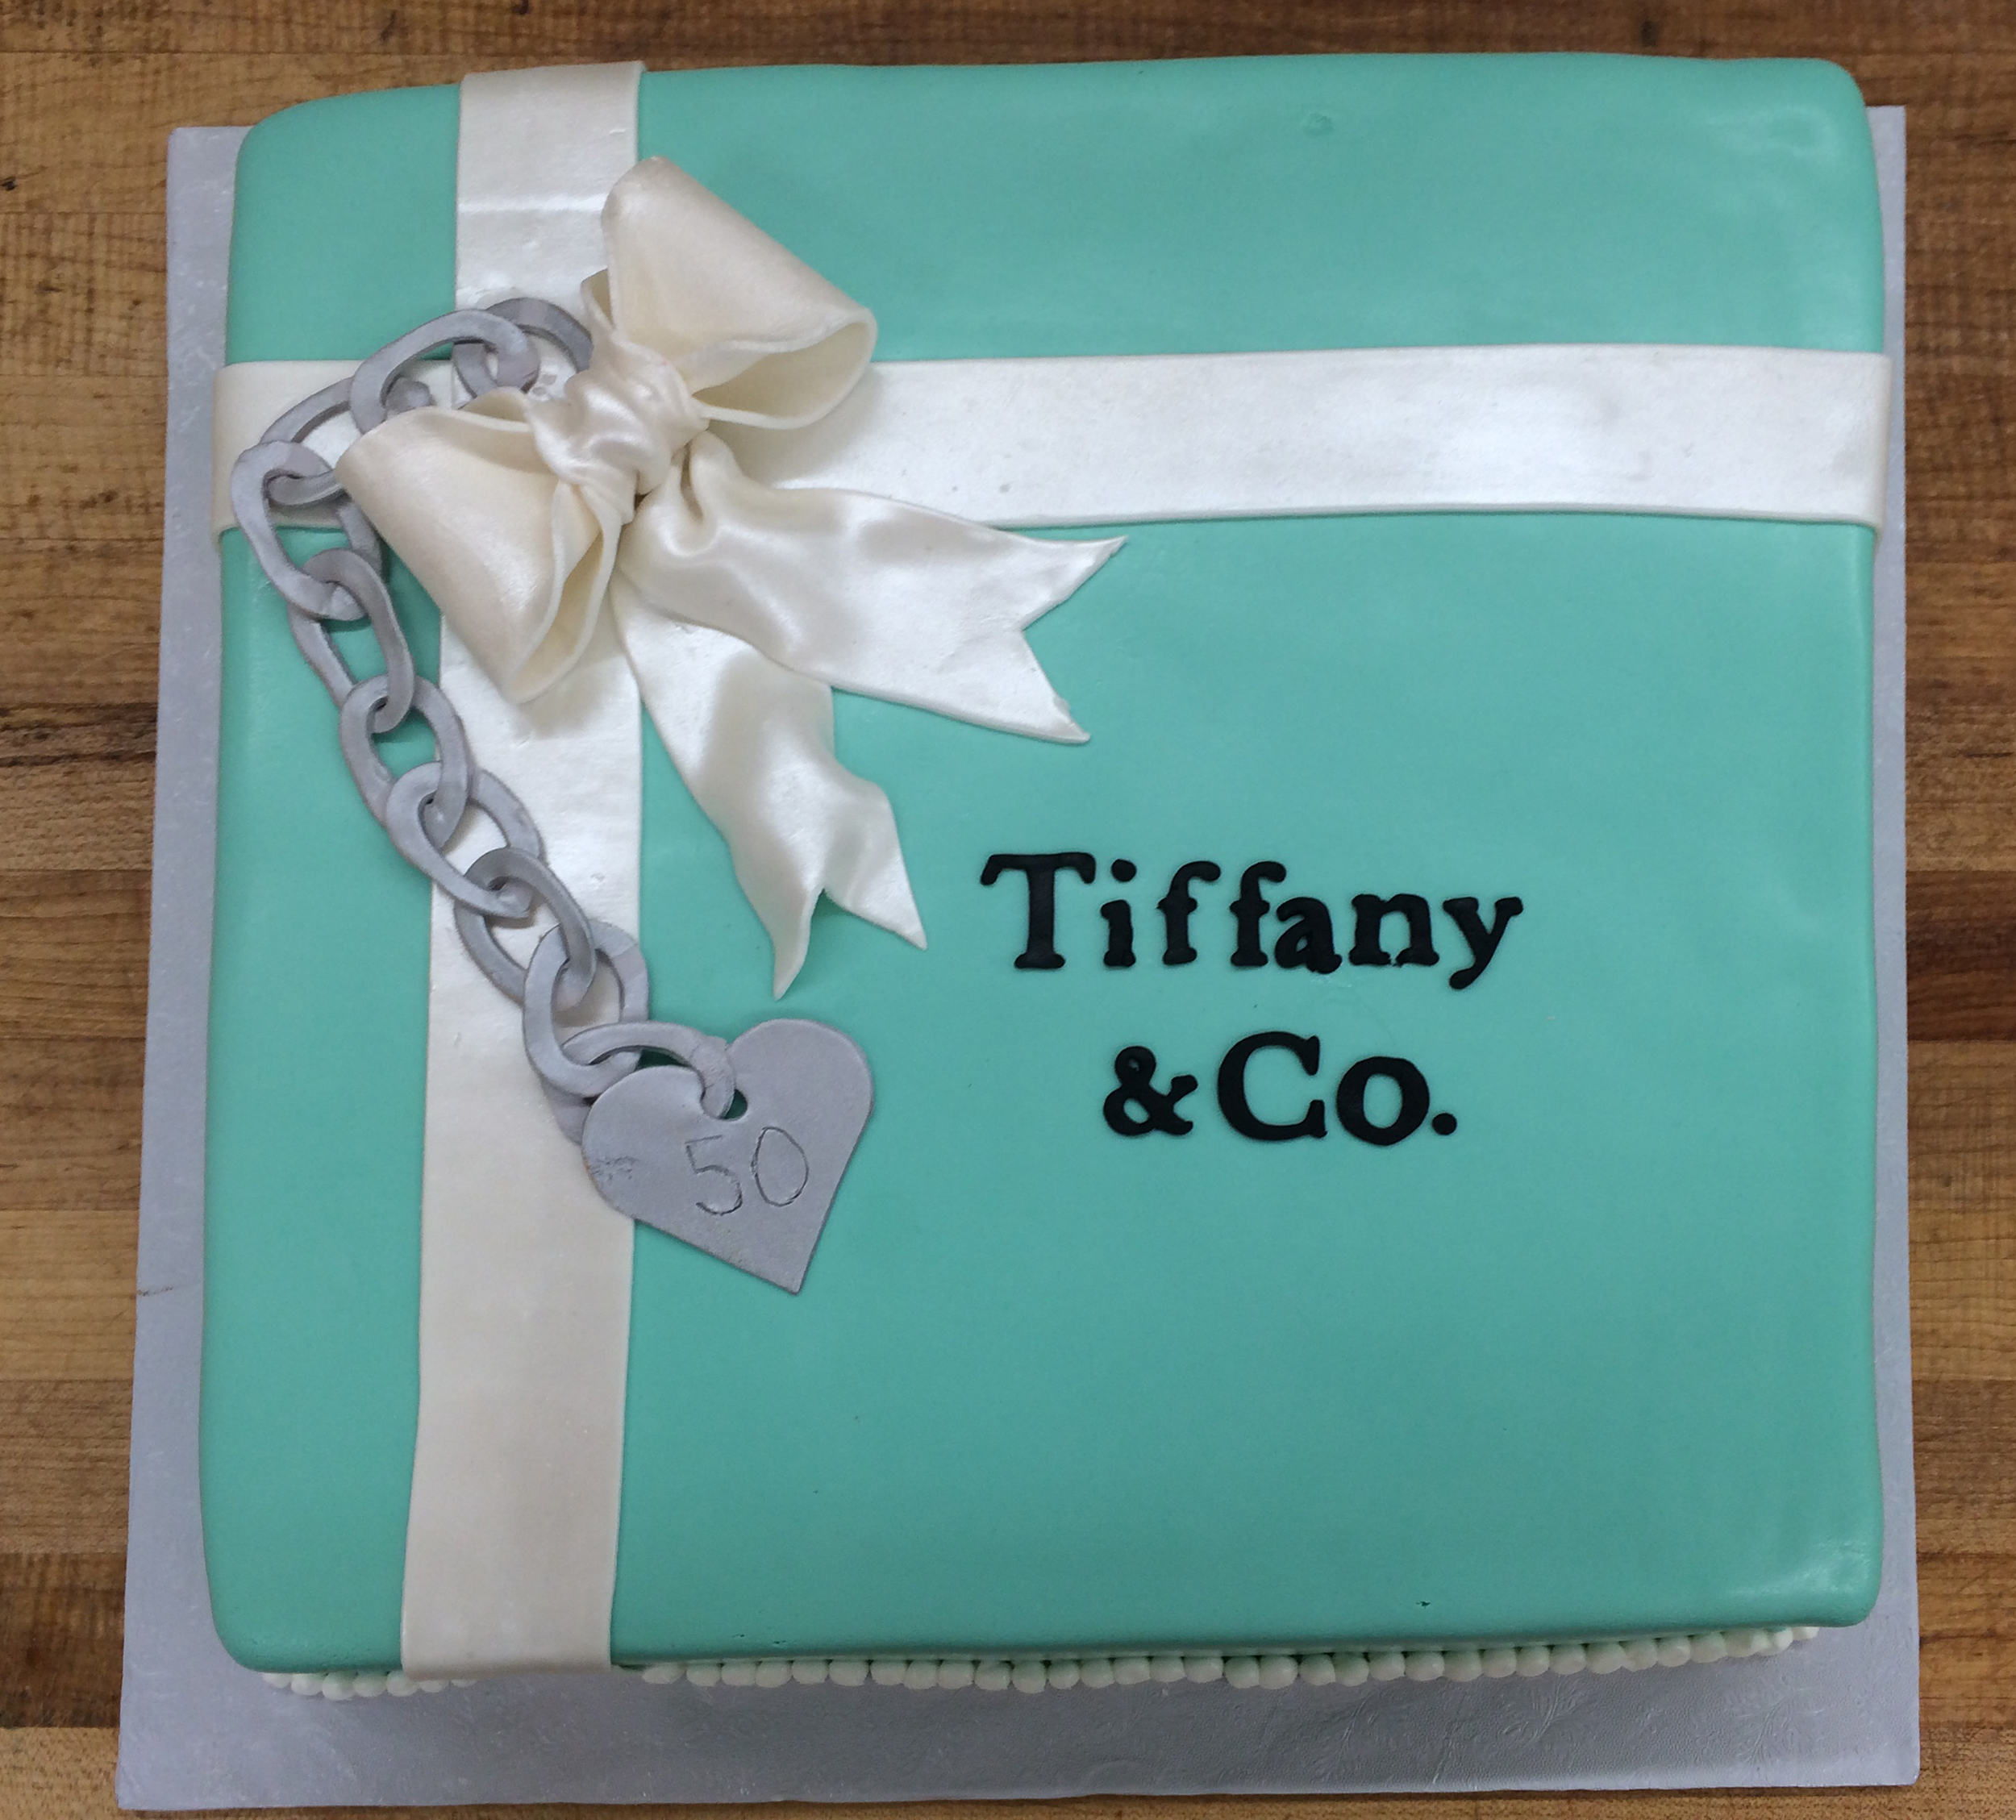 Tiffany with Silver Charm in Rolled Fondant with lg bow & Rolled Fondant letters